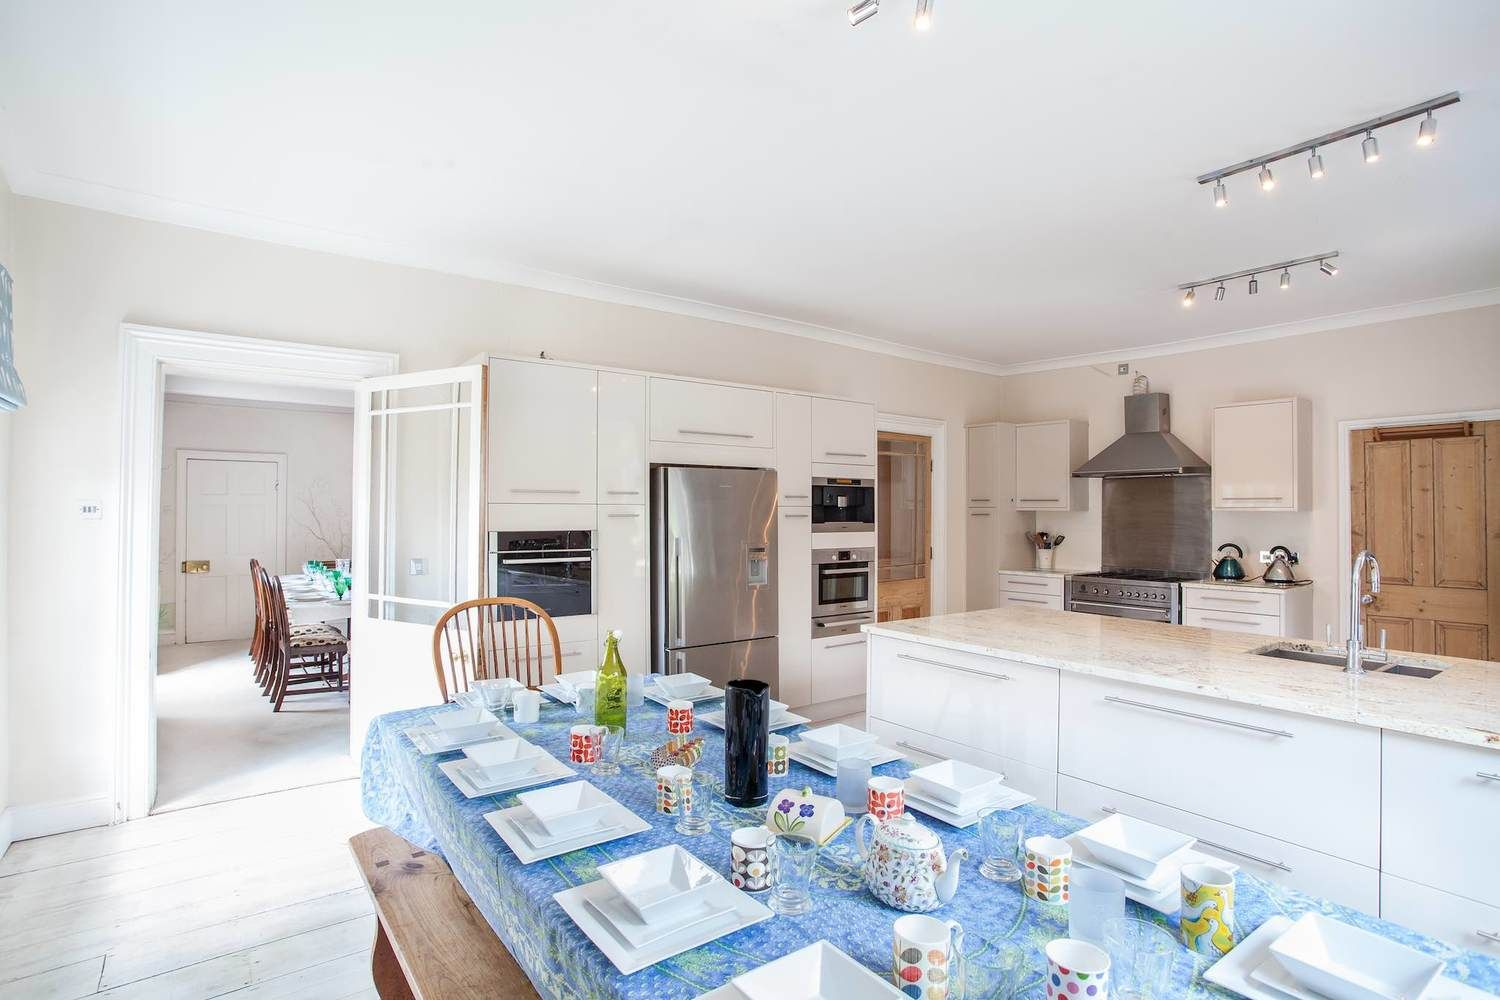 Ground floor: Open plan kitchen seating 12, perfect for jolly breakfasts